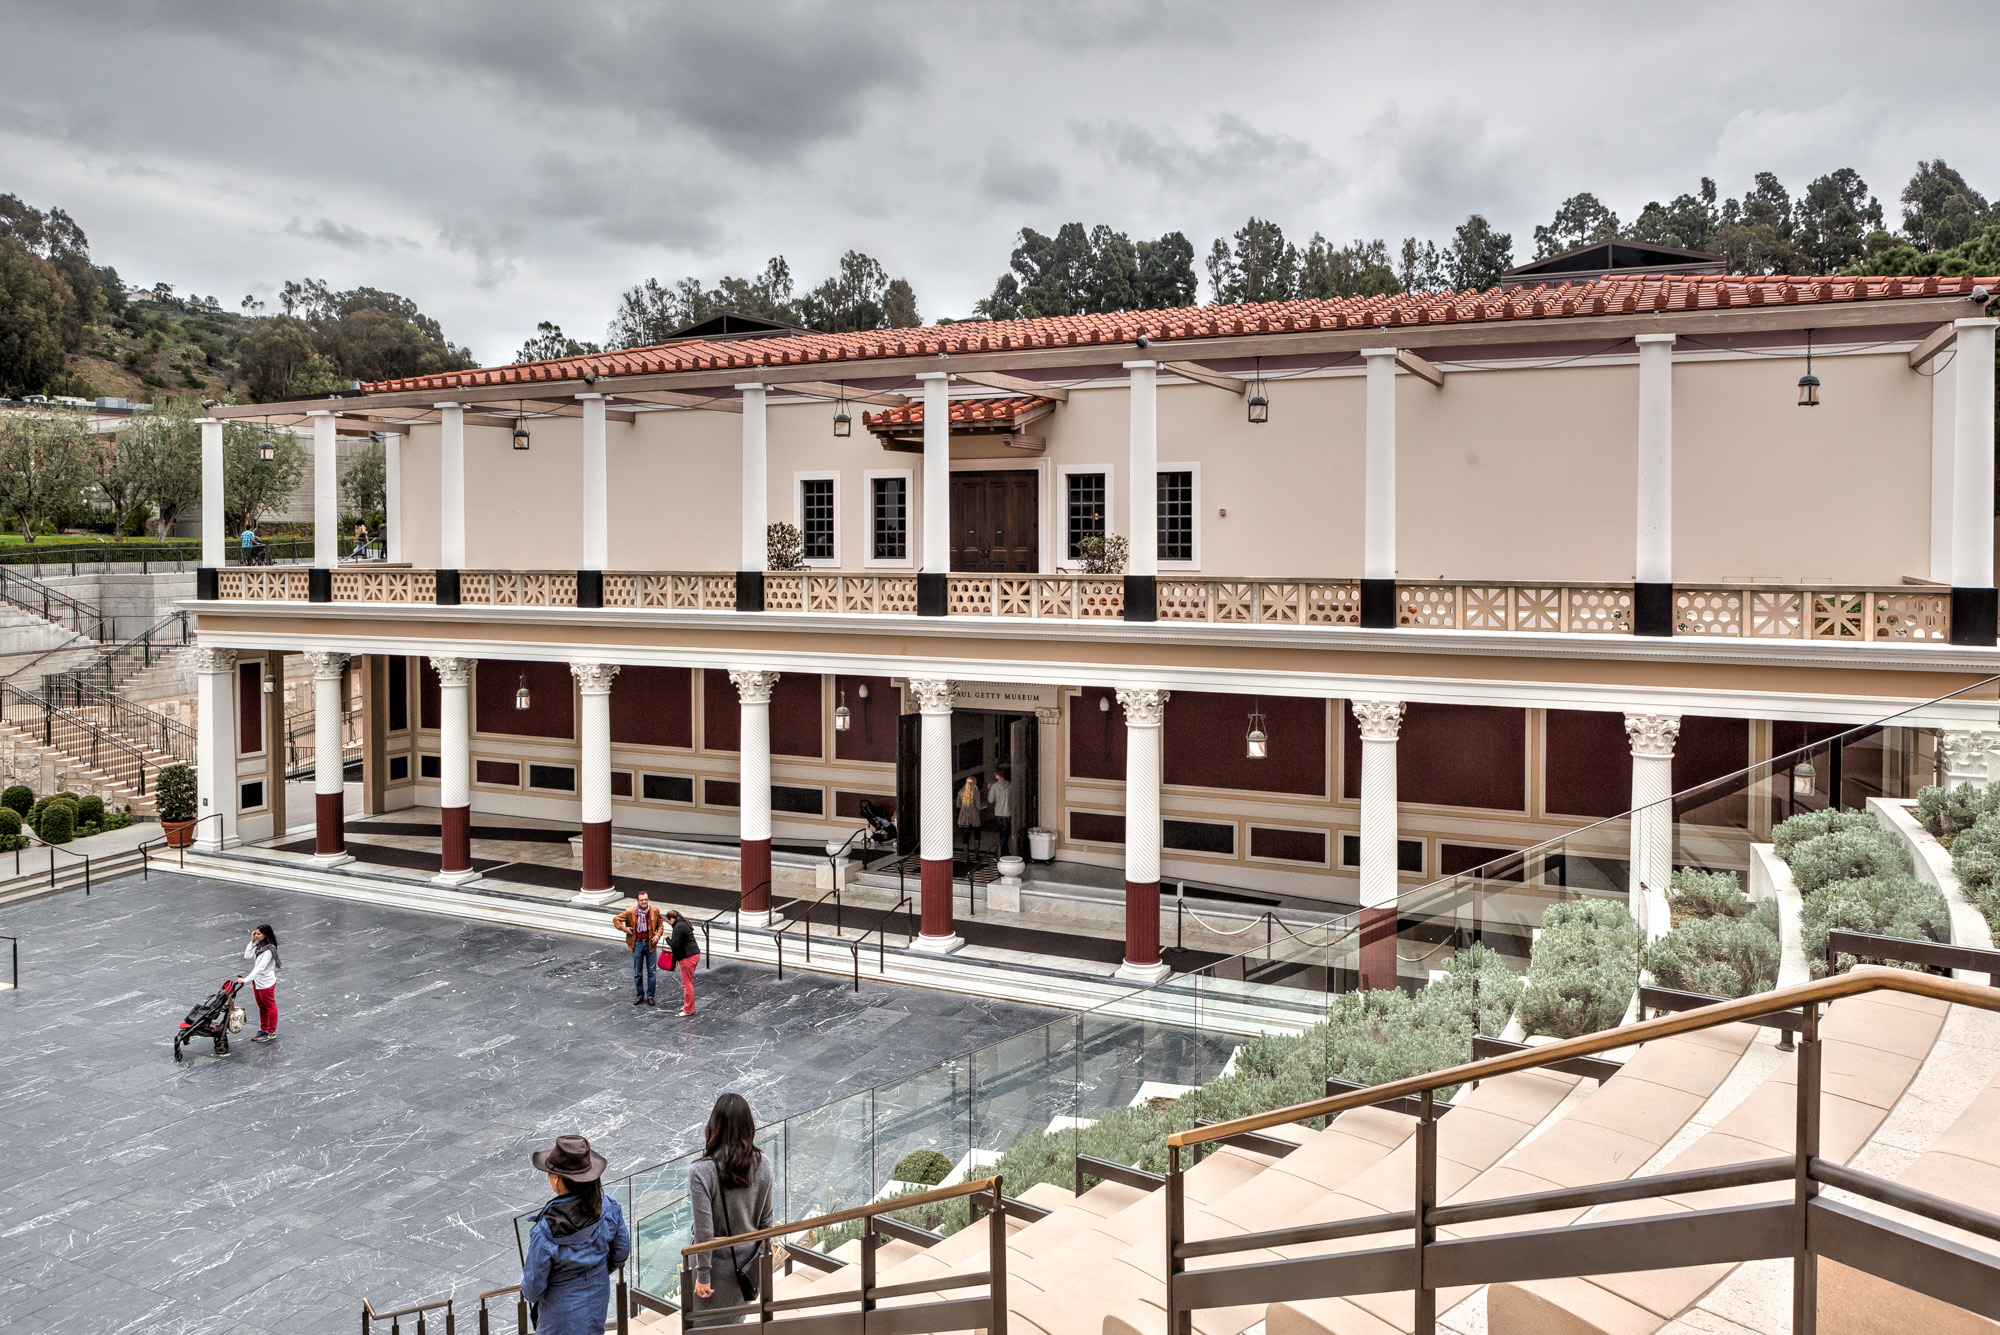 the getty villa Getty villa museum was renovated, increasing it visitor facilities to serve as a  center for the study of ancient art, archeology and conservation.